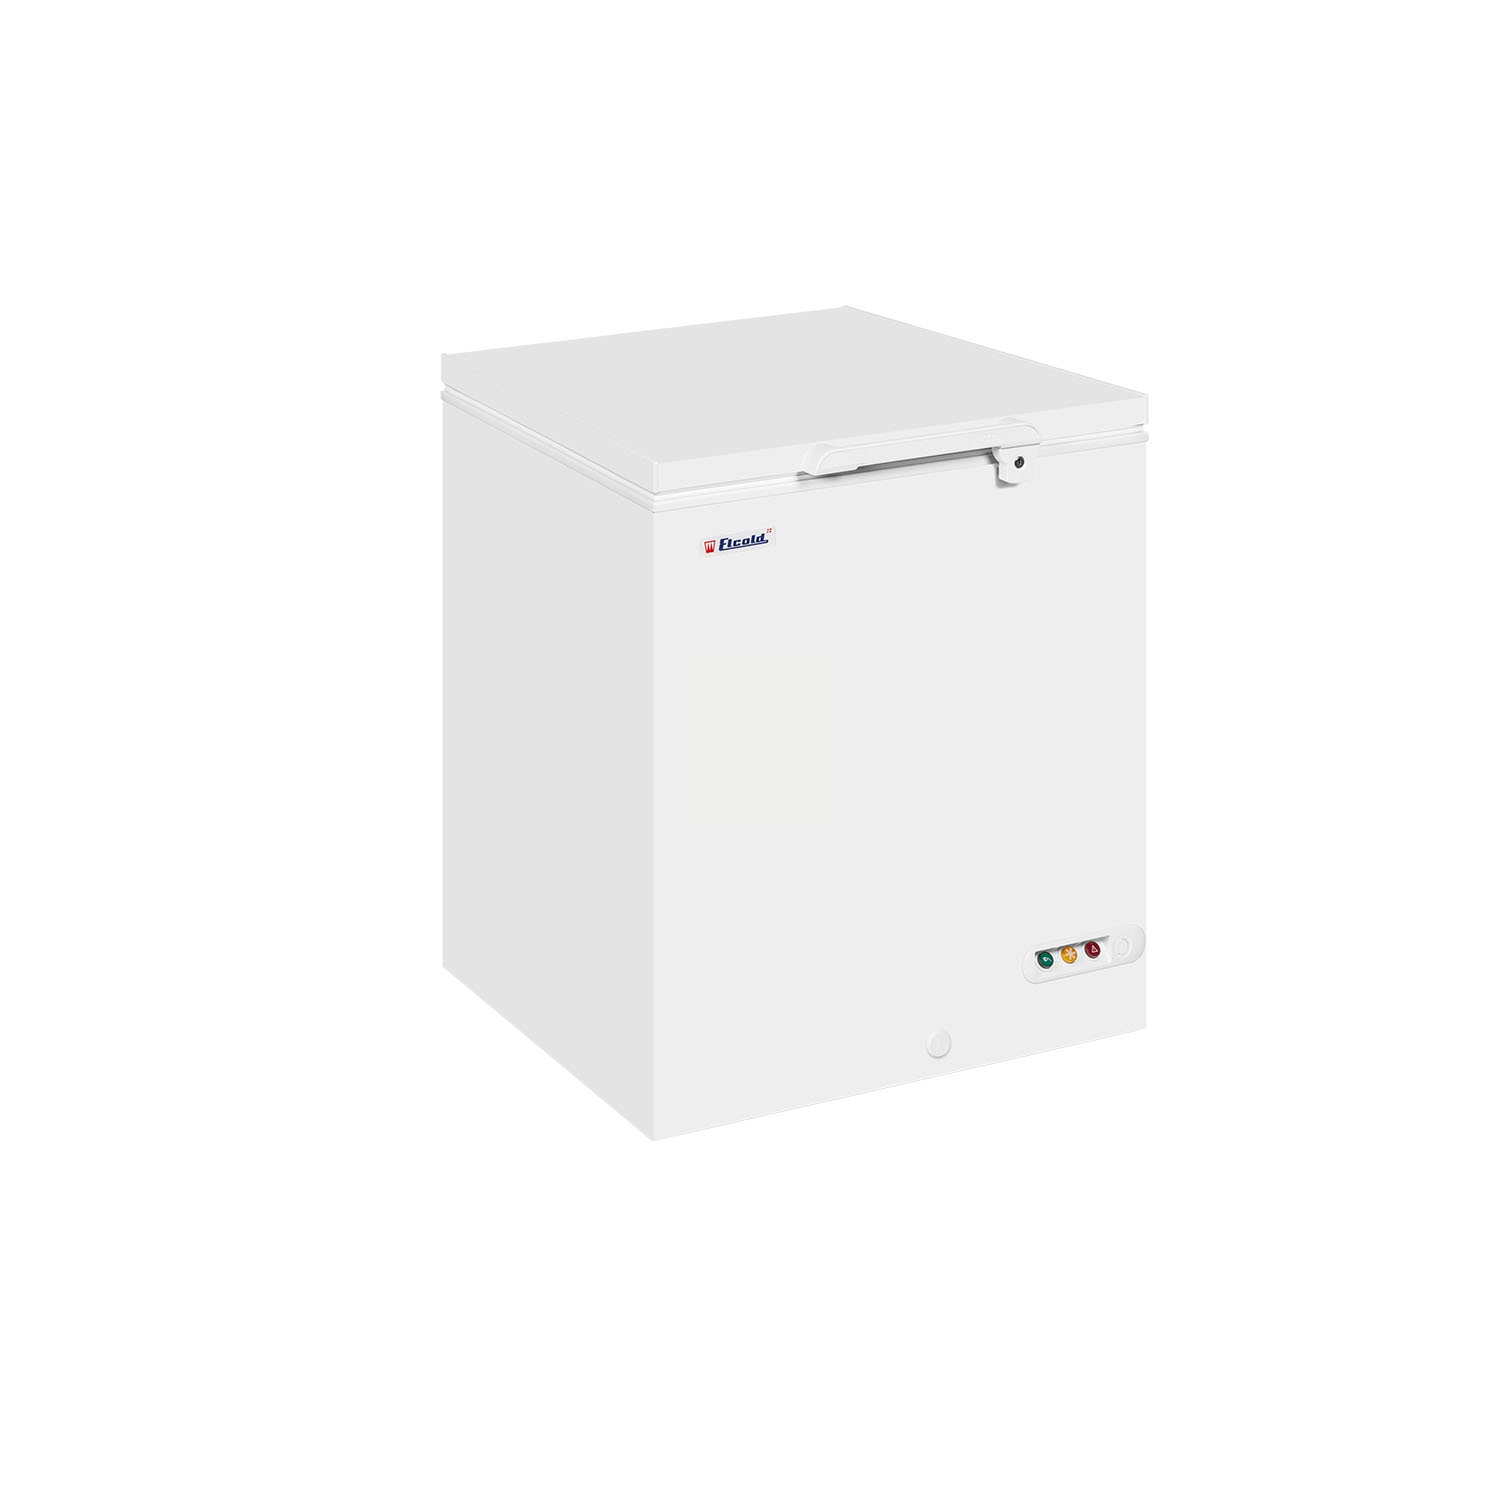 Elcold EL22 Solid Lid Chest Freezer